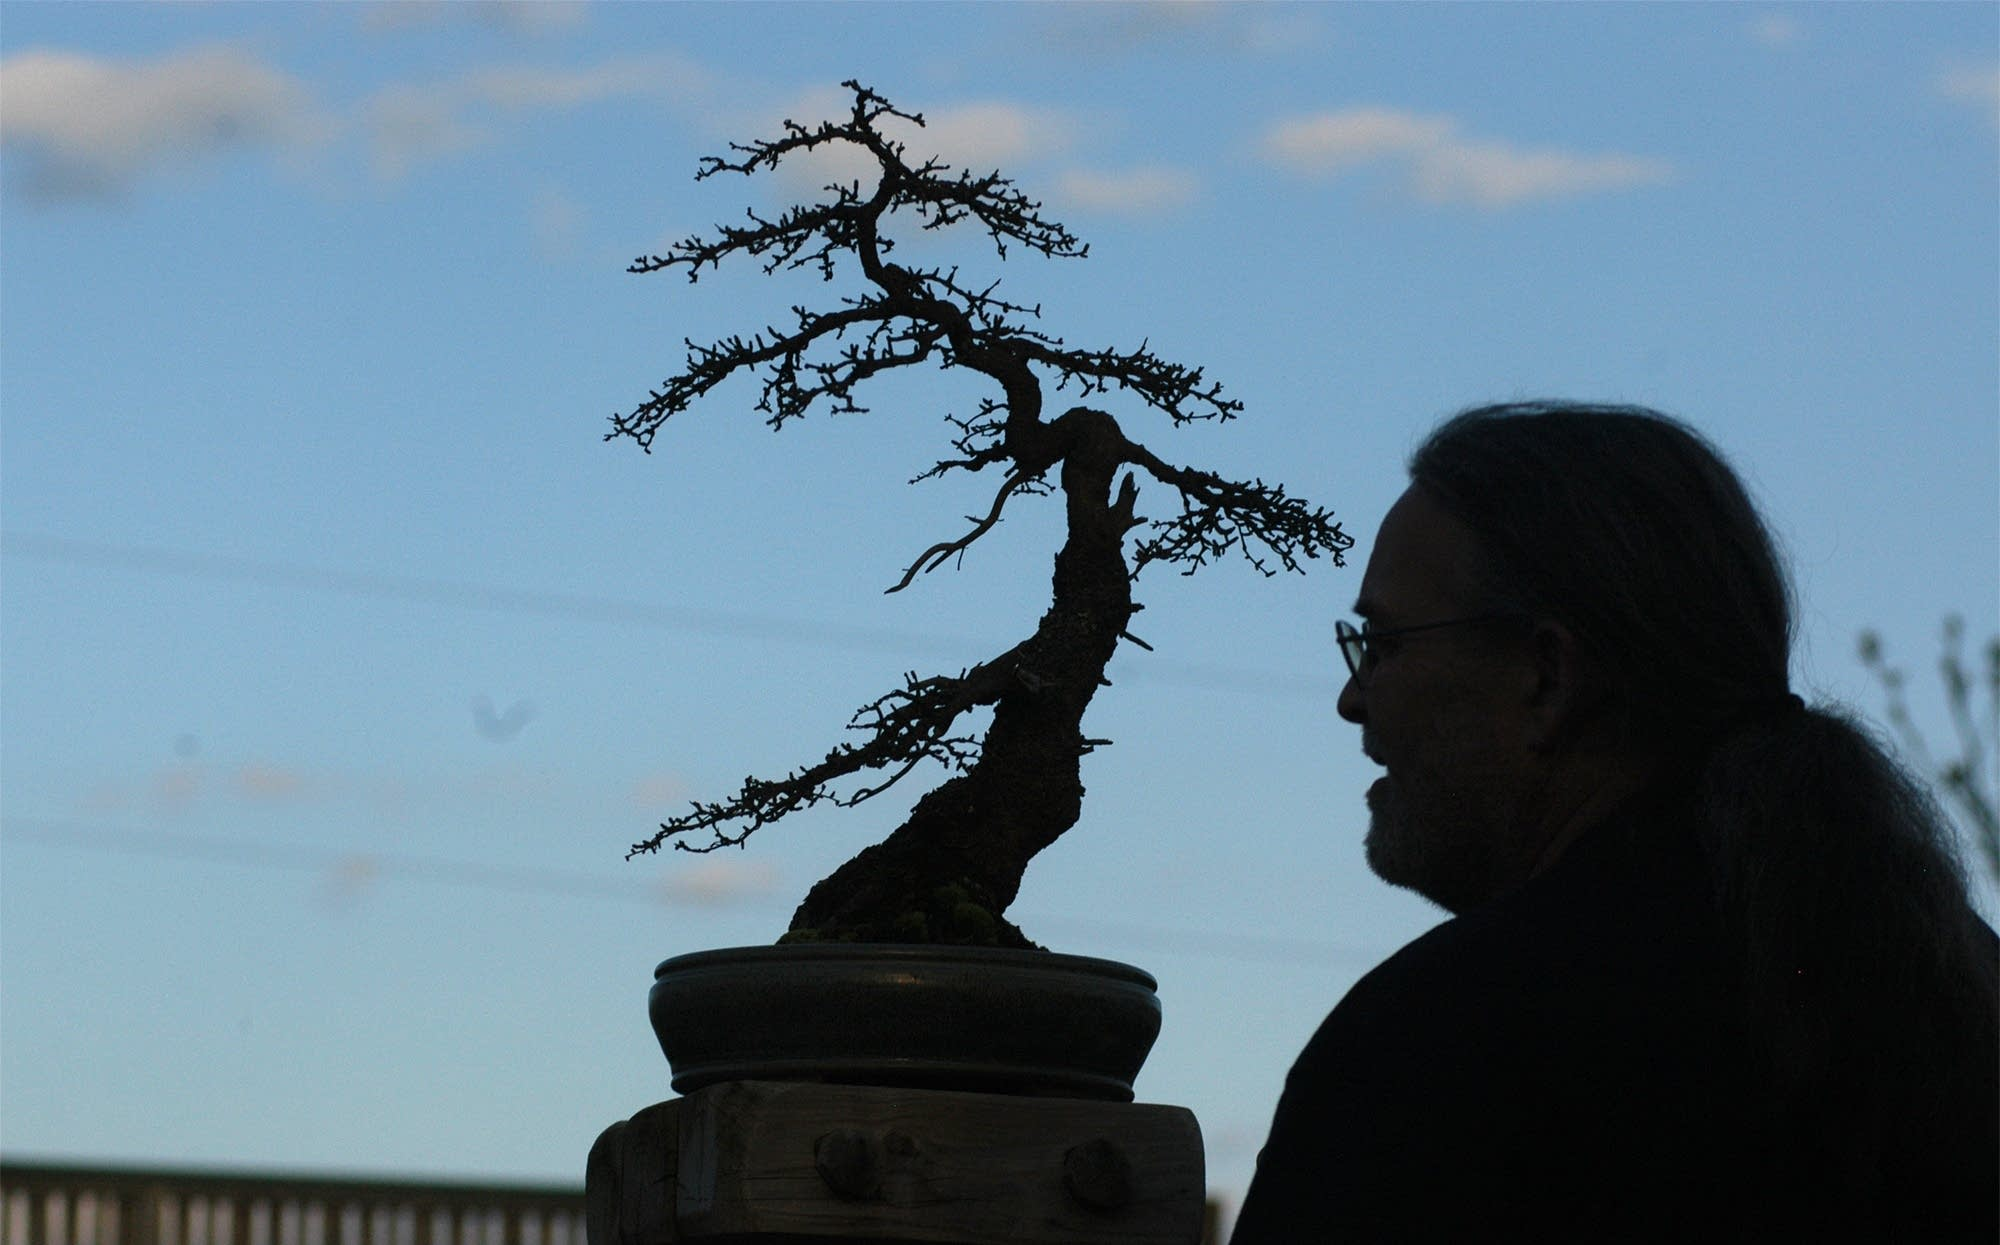 David Crust has a passion for bonsai created from trees of the region.